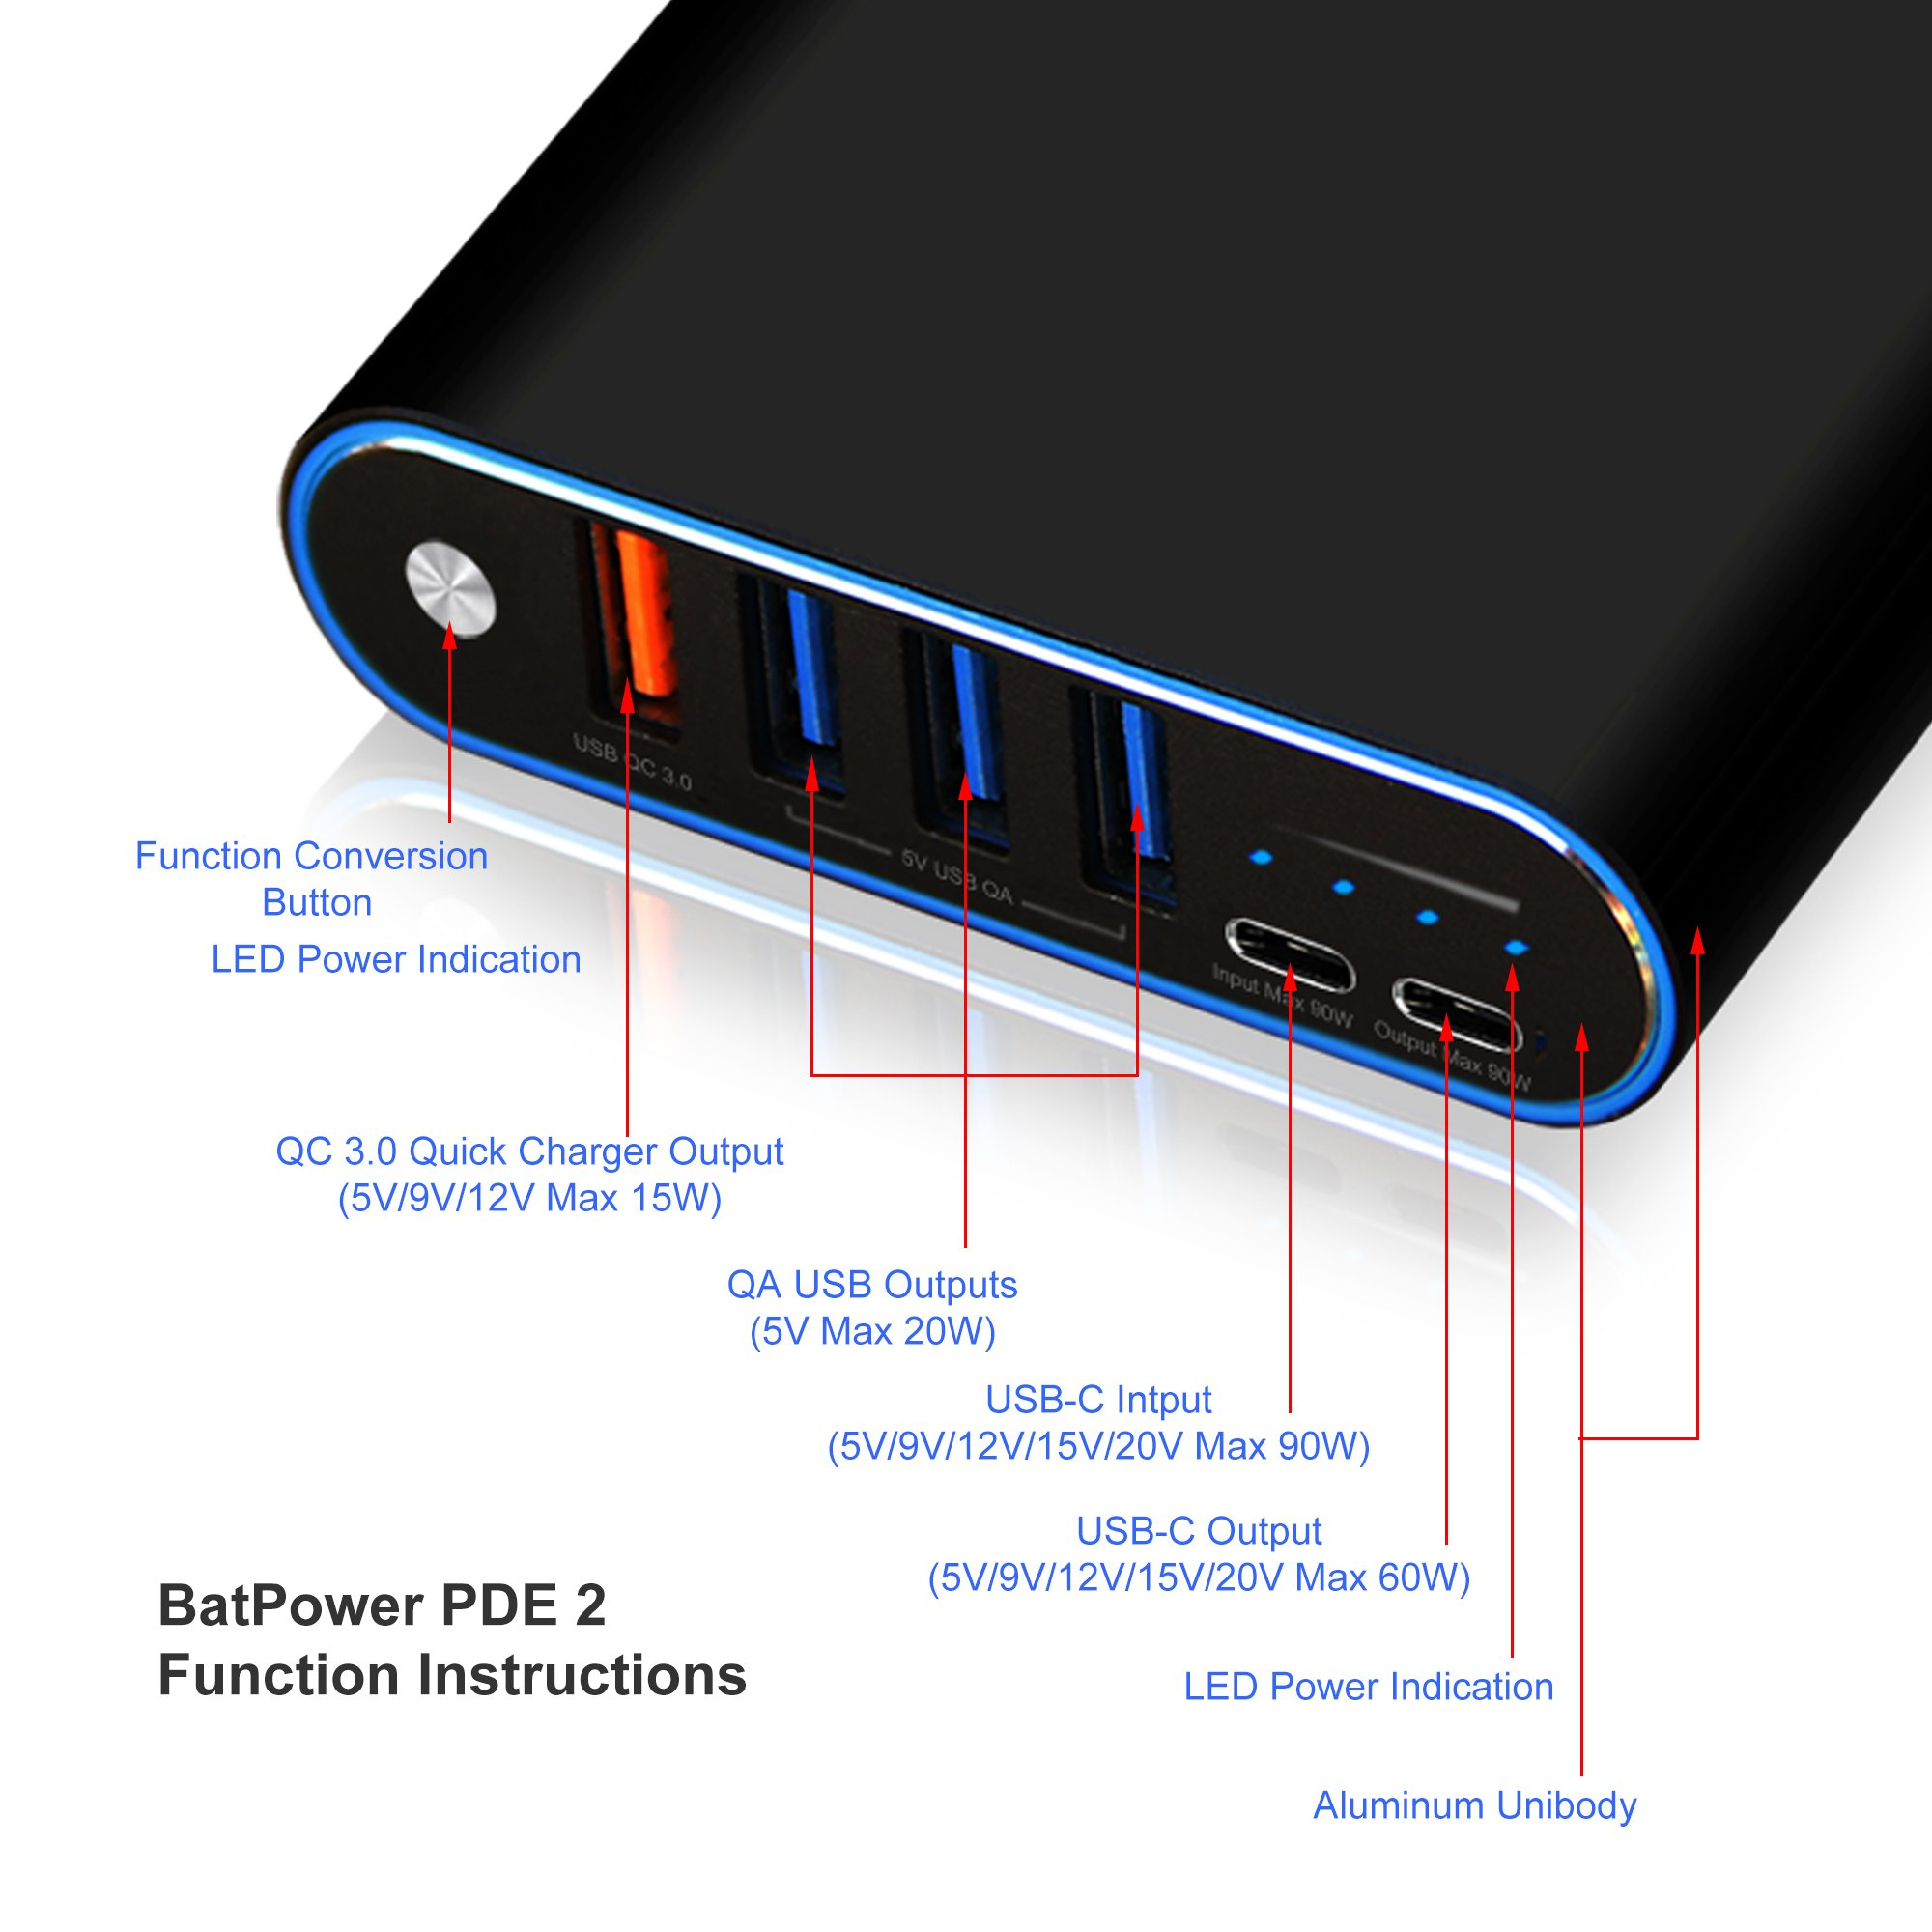 BatPower PDE 2 P40B USB-C Power Bank Portable Charger External Battery for Apple Microsoft HP Lenovo Dell Razer Asus LG Acer MSI Samsung PD USB C laptop notebook tablet smartphone -148Wh by BatPower (Image #3)